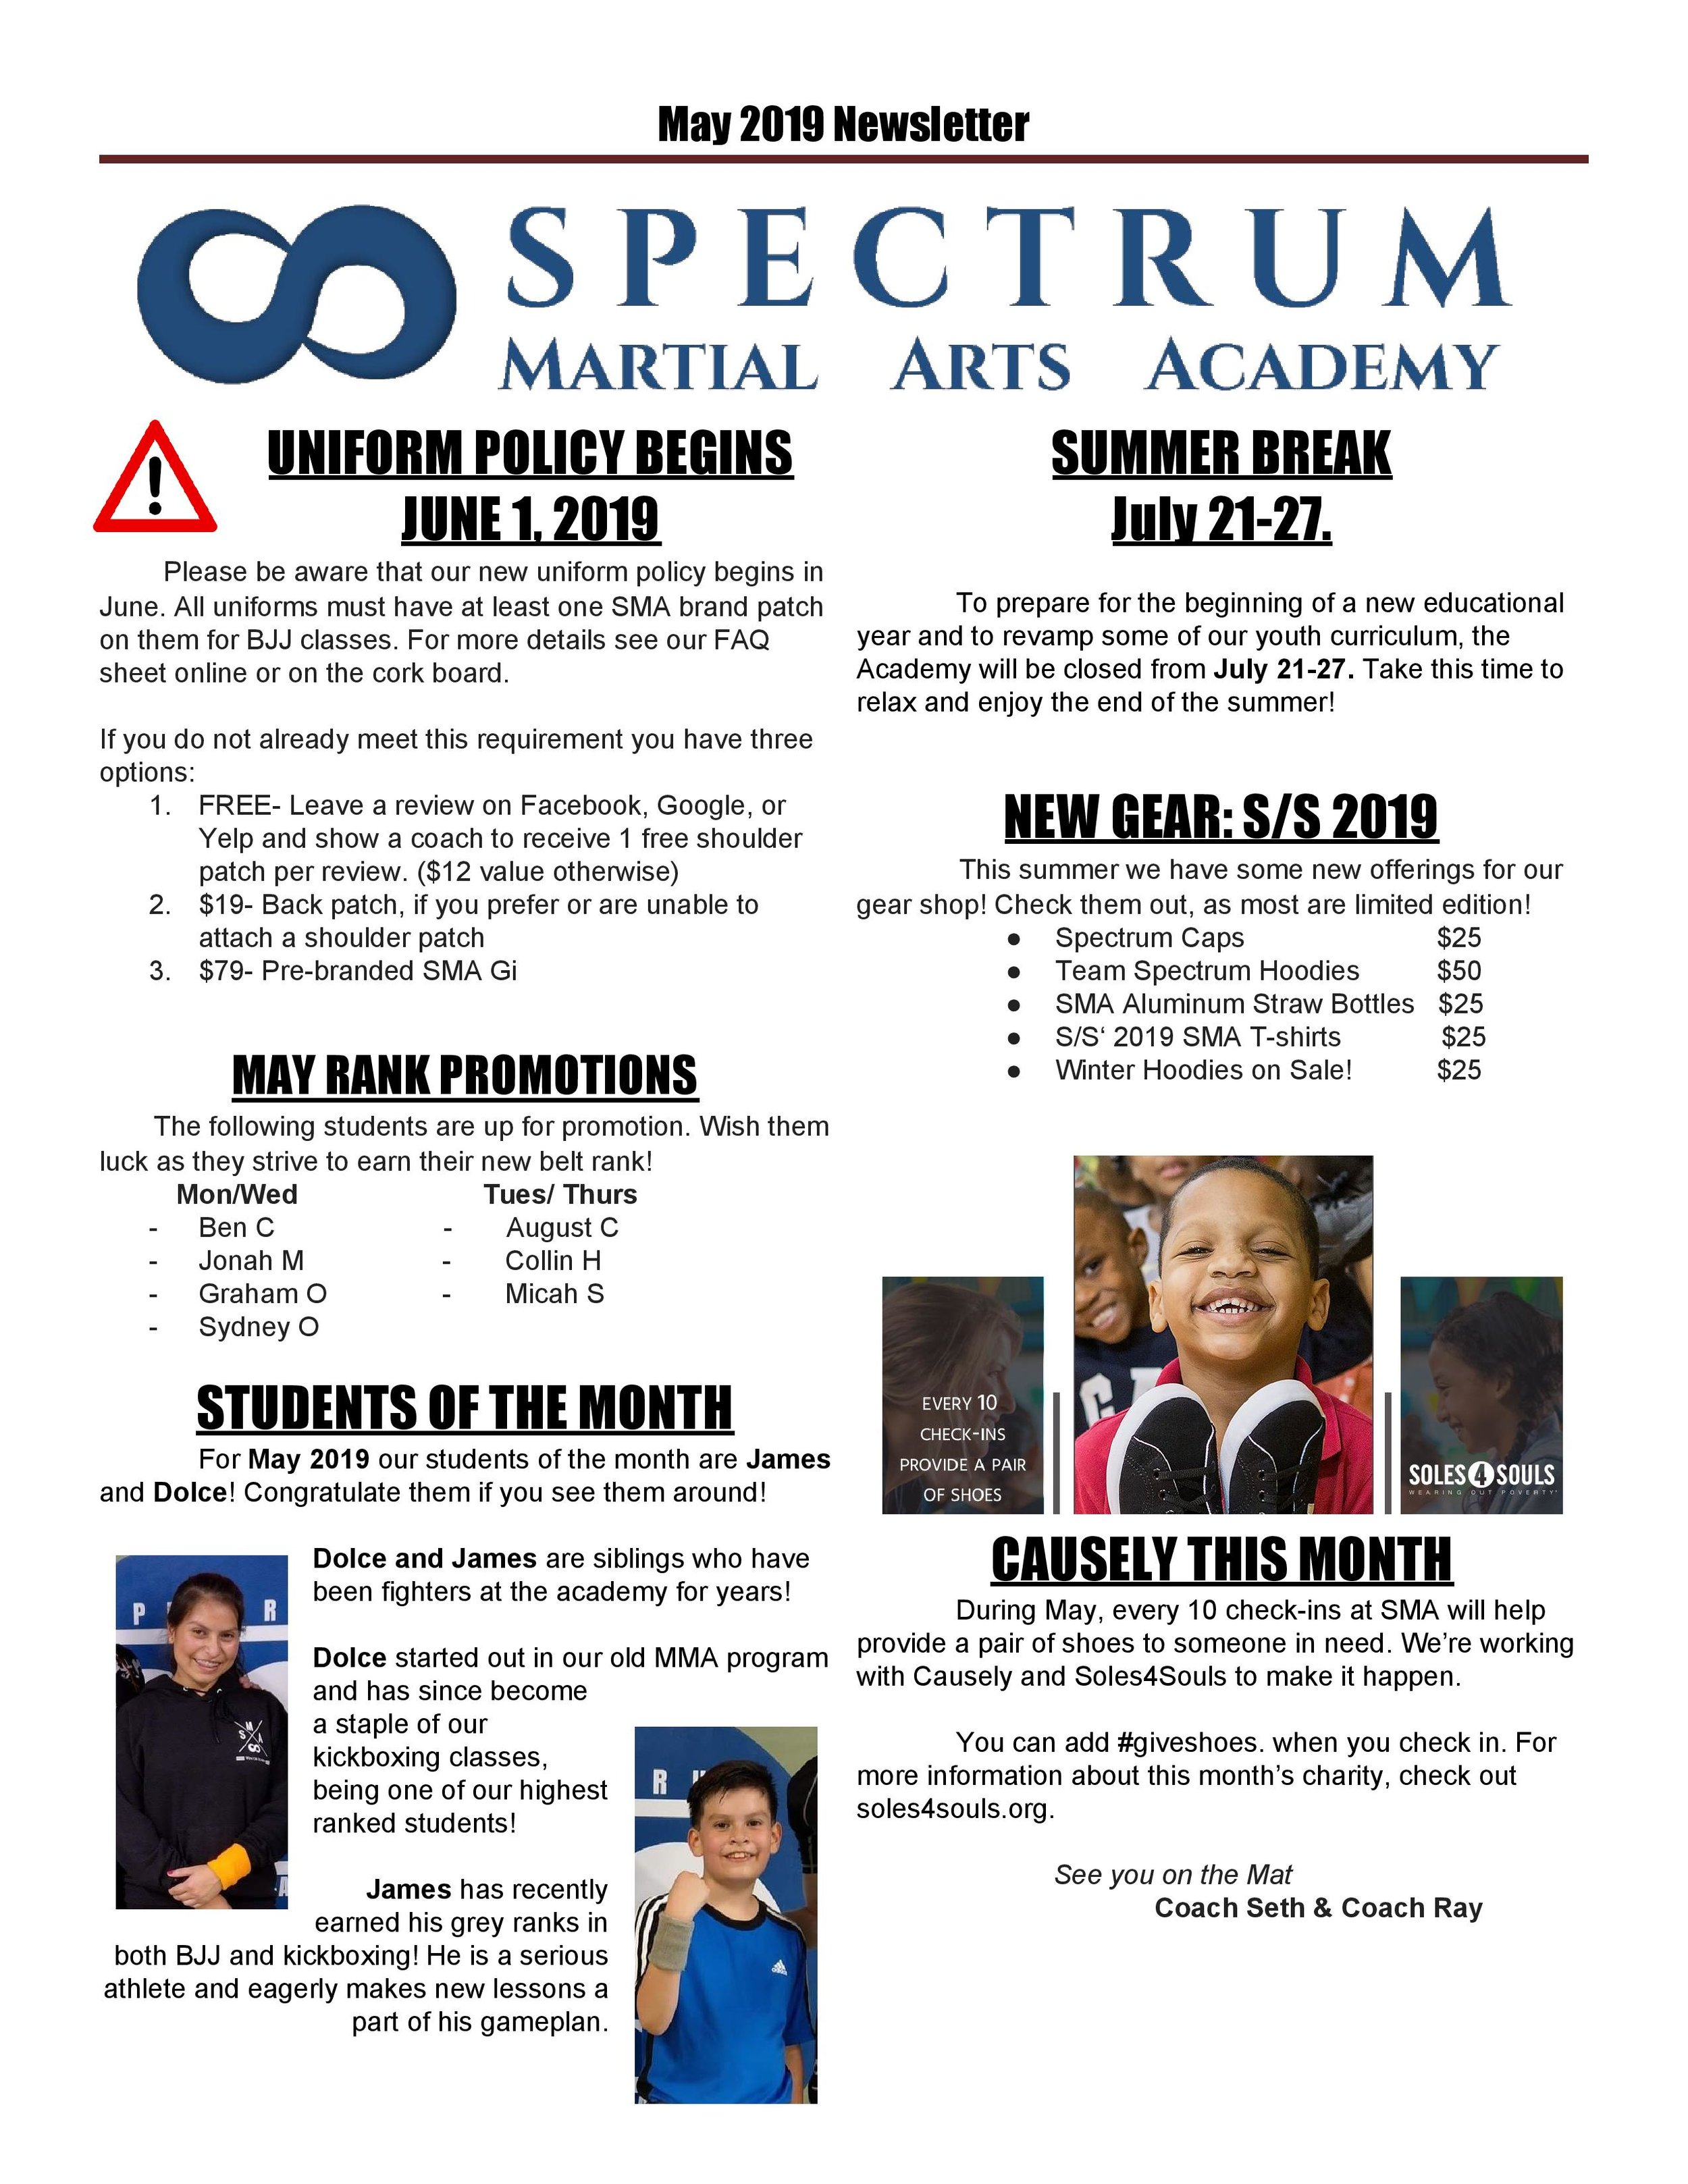 May 2019 Newsletter (1)-page-001.jpg